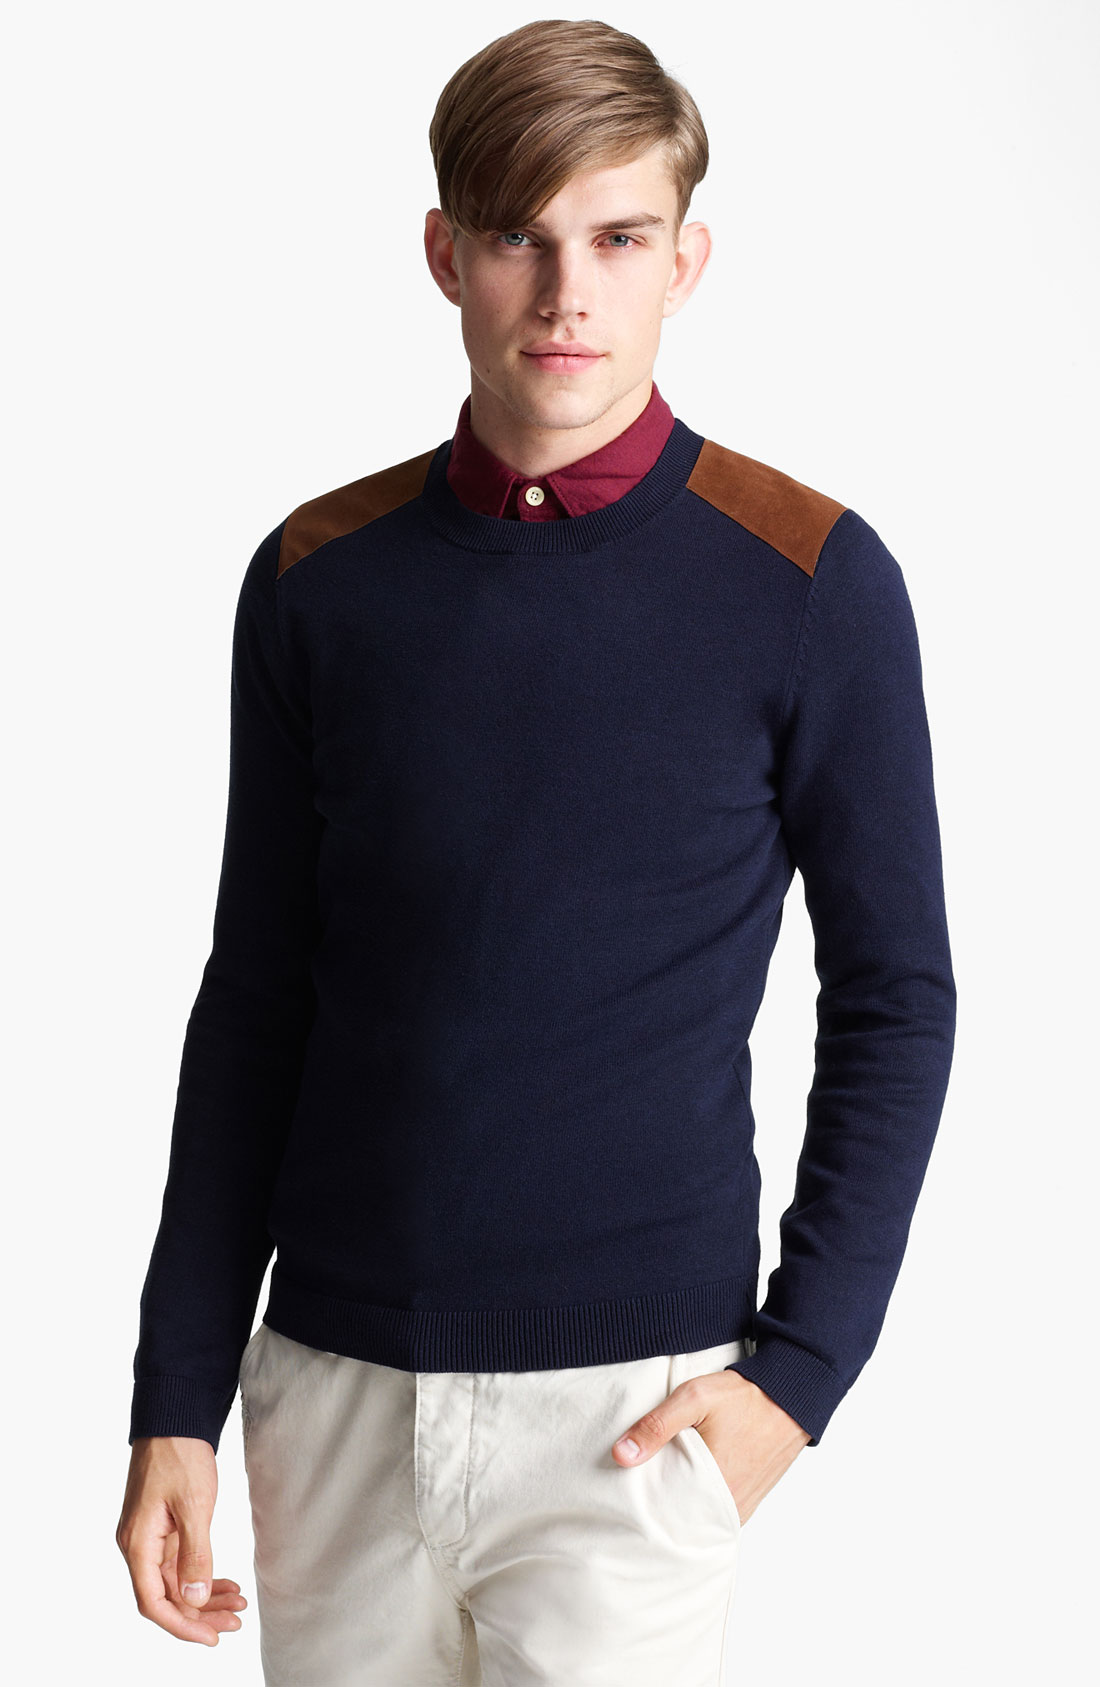 Mens Sweater With Shoulder Patch